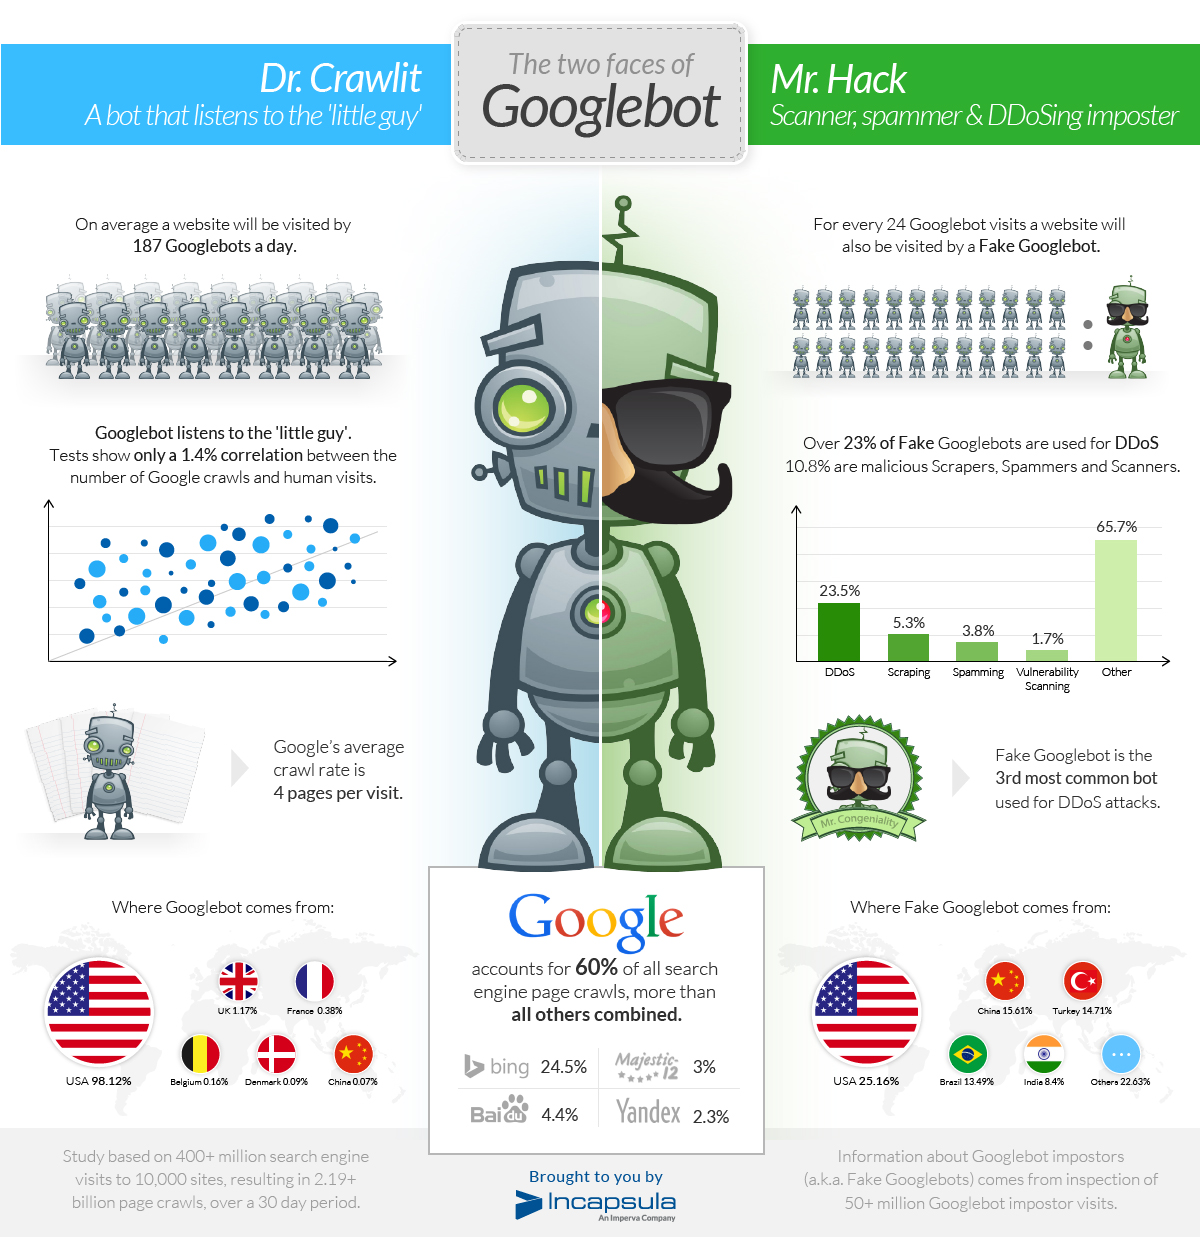 Fake Googlebots used to run application-layer DDoS | Security Affairs